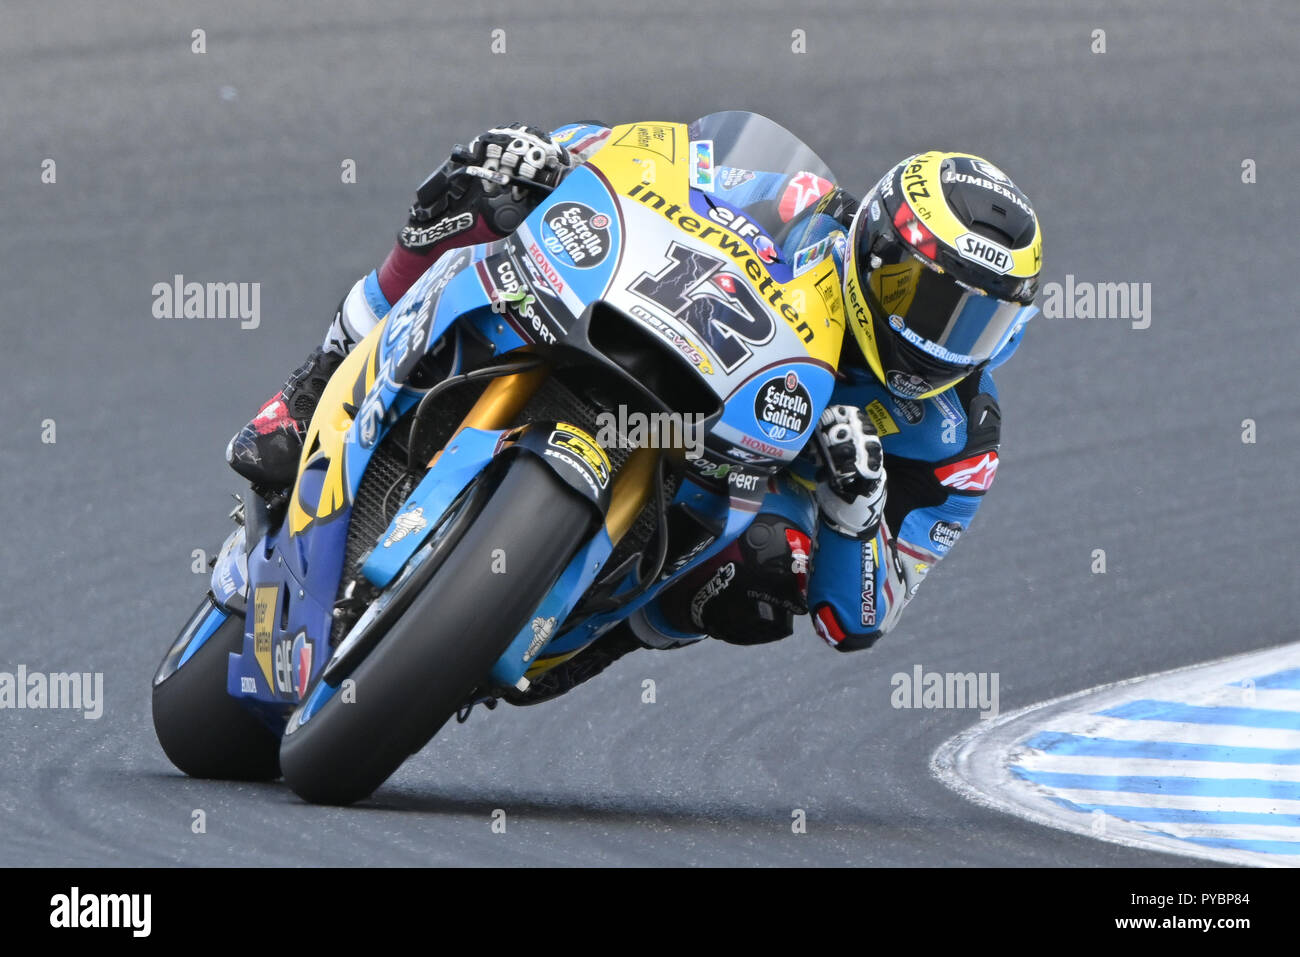 Melbourne, Australia. 27 October 2018.  Thomas Luthi (SWI) on the No.12 Honda from Eg 0, 0 Marc Vds during practice session three at the 2018 MotoGP of Australia at Phillip Island Grand Prix Circuit, Victoria, Australia. Sydney Low/Cal Sport Media Credit: Cal Sport Media/Alamy Live News Stock Photo